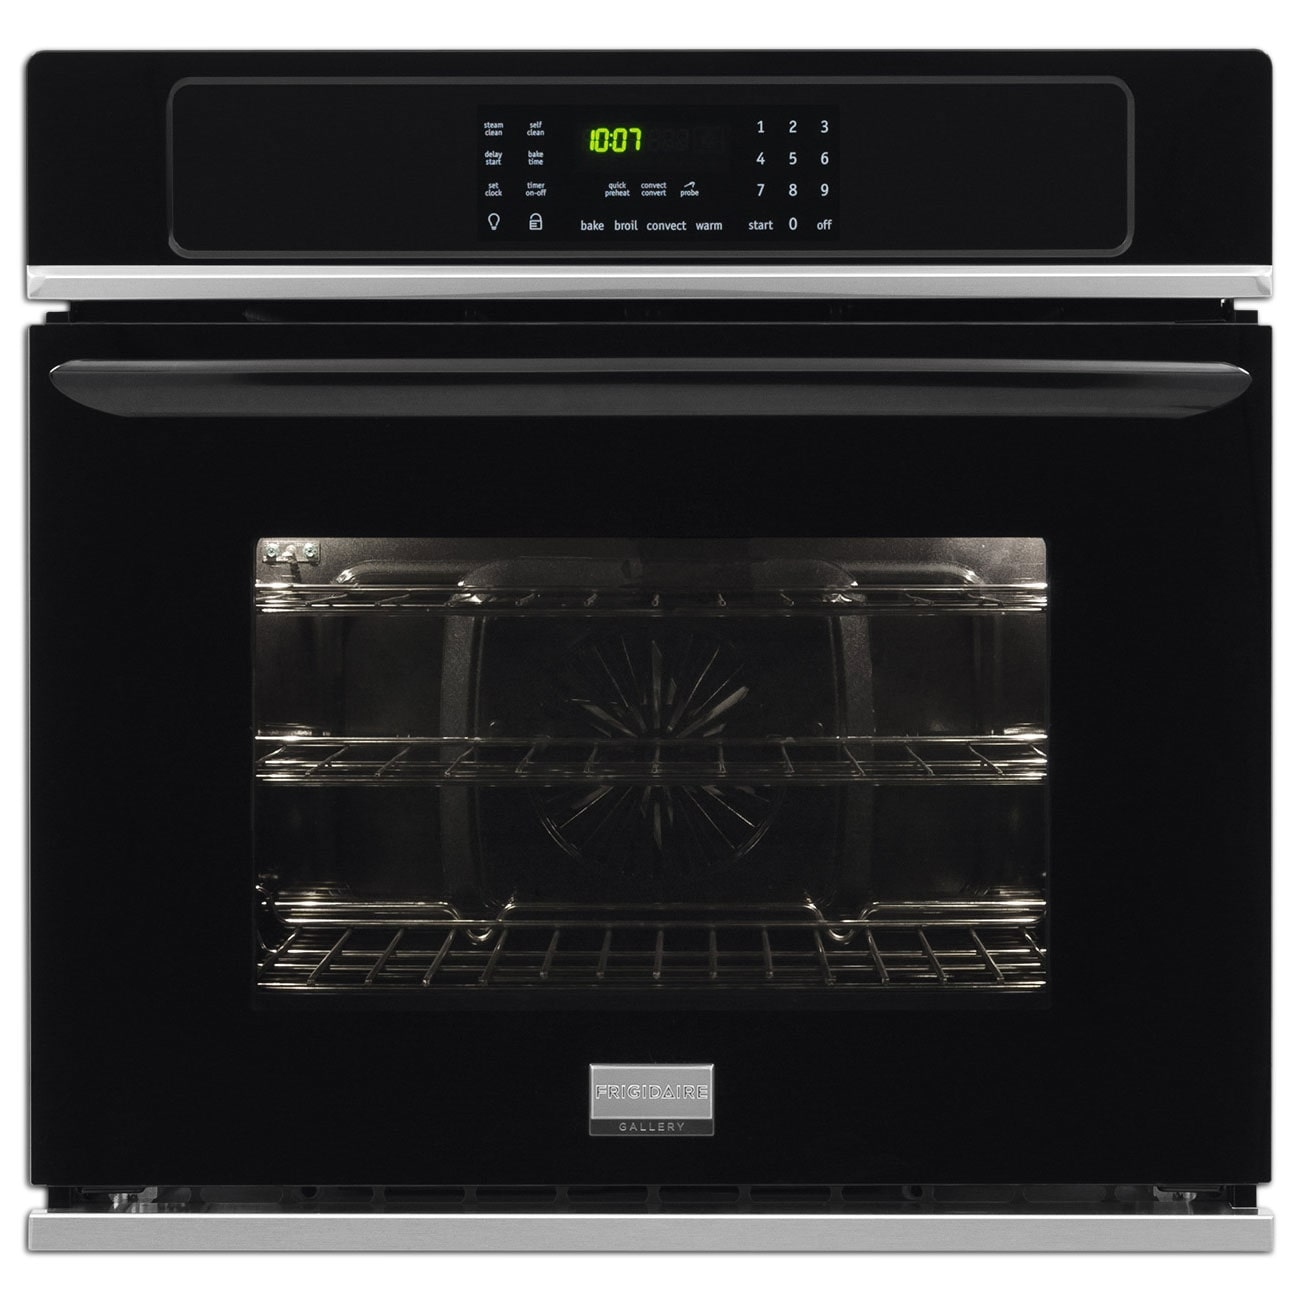 Cooking Products - Frigidaire Gallery Black Convection Wall Oven (4.6 Cu. Ft.) - FGEW3065PB